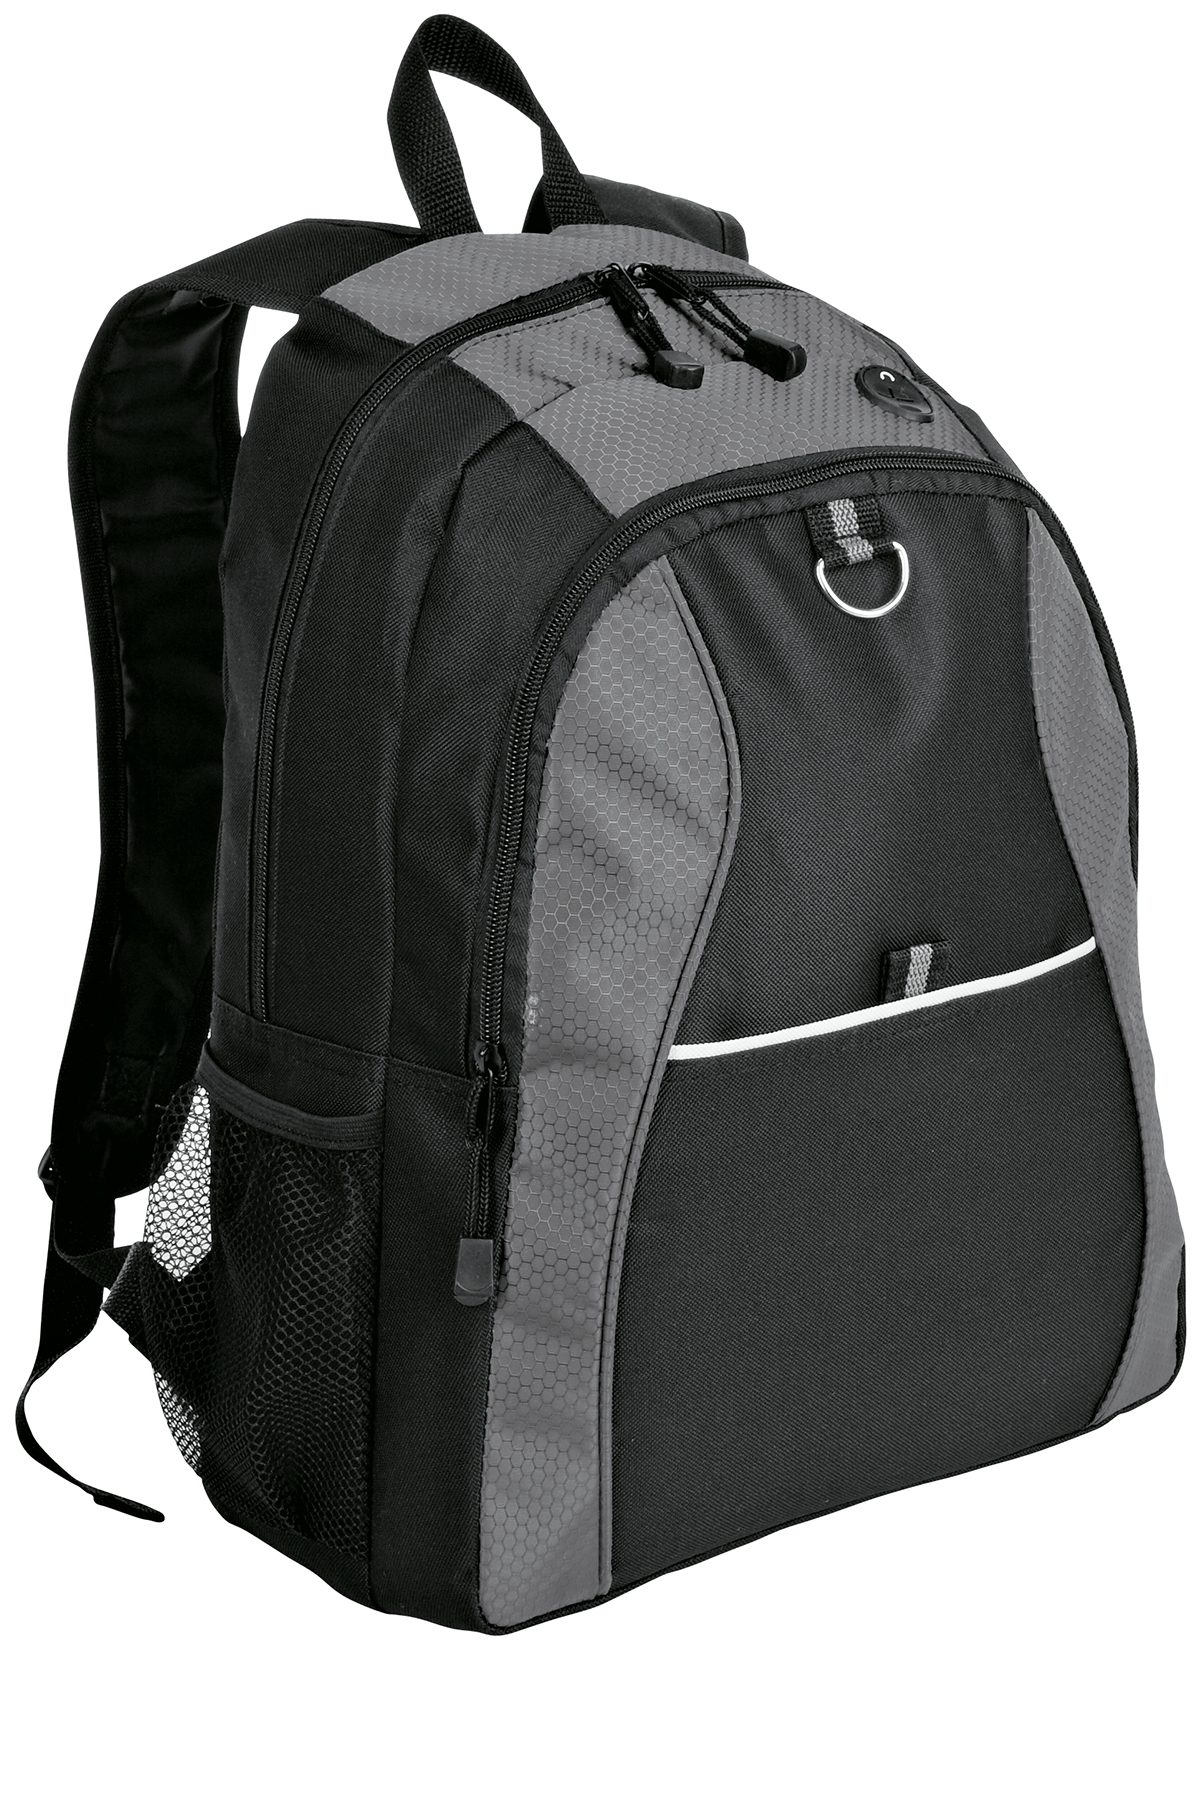 Port & Company BG1020 Improved Contrast Honeycomb Backpack